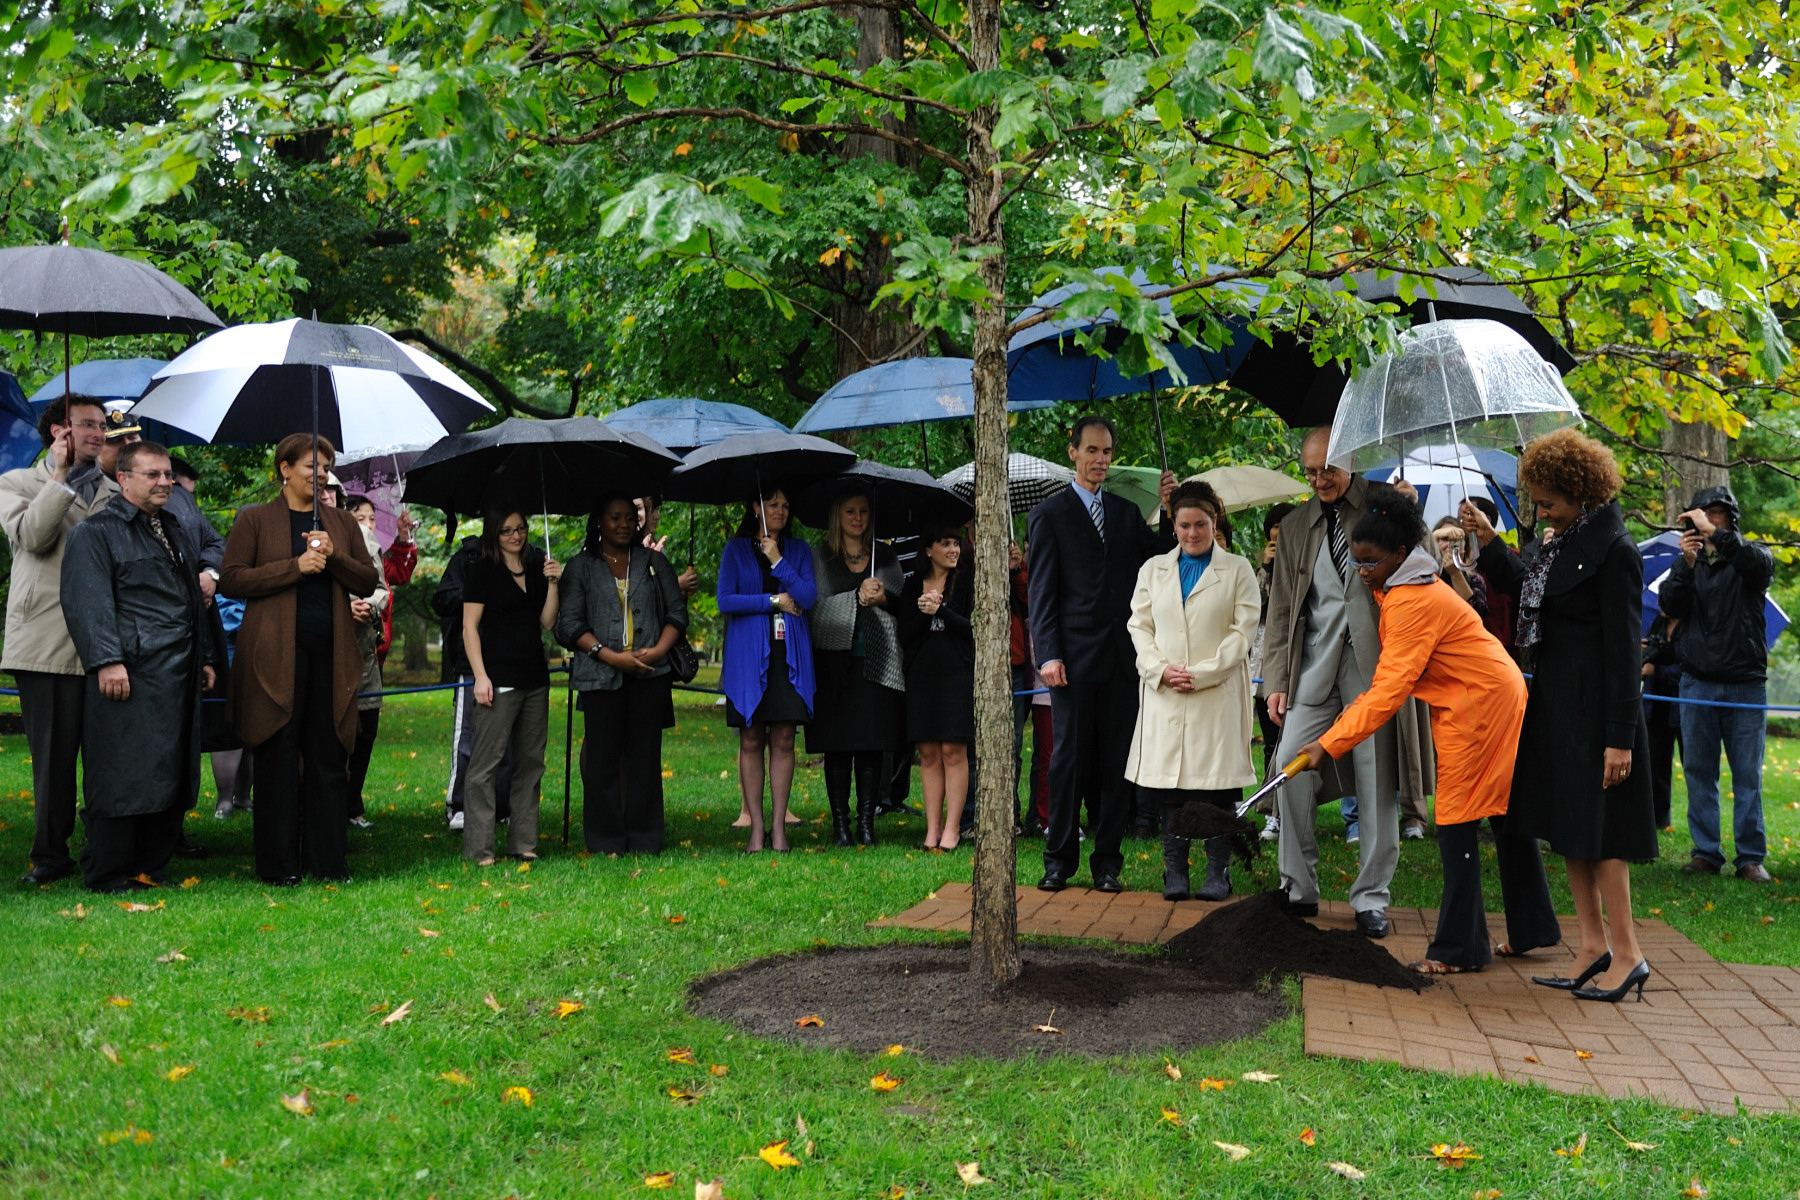 Commemorative trees mark visits by members of the Royal Family, heads of State and other dignitaries. They also are planted for special anniversaries and at the end of a governor general's mandate.